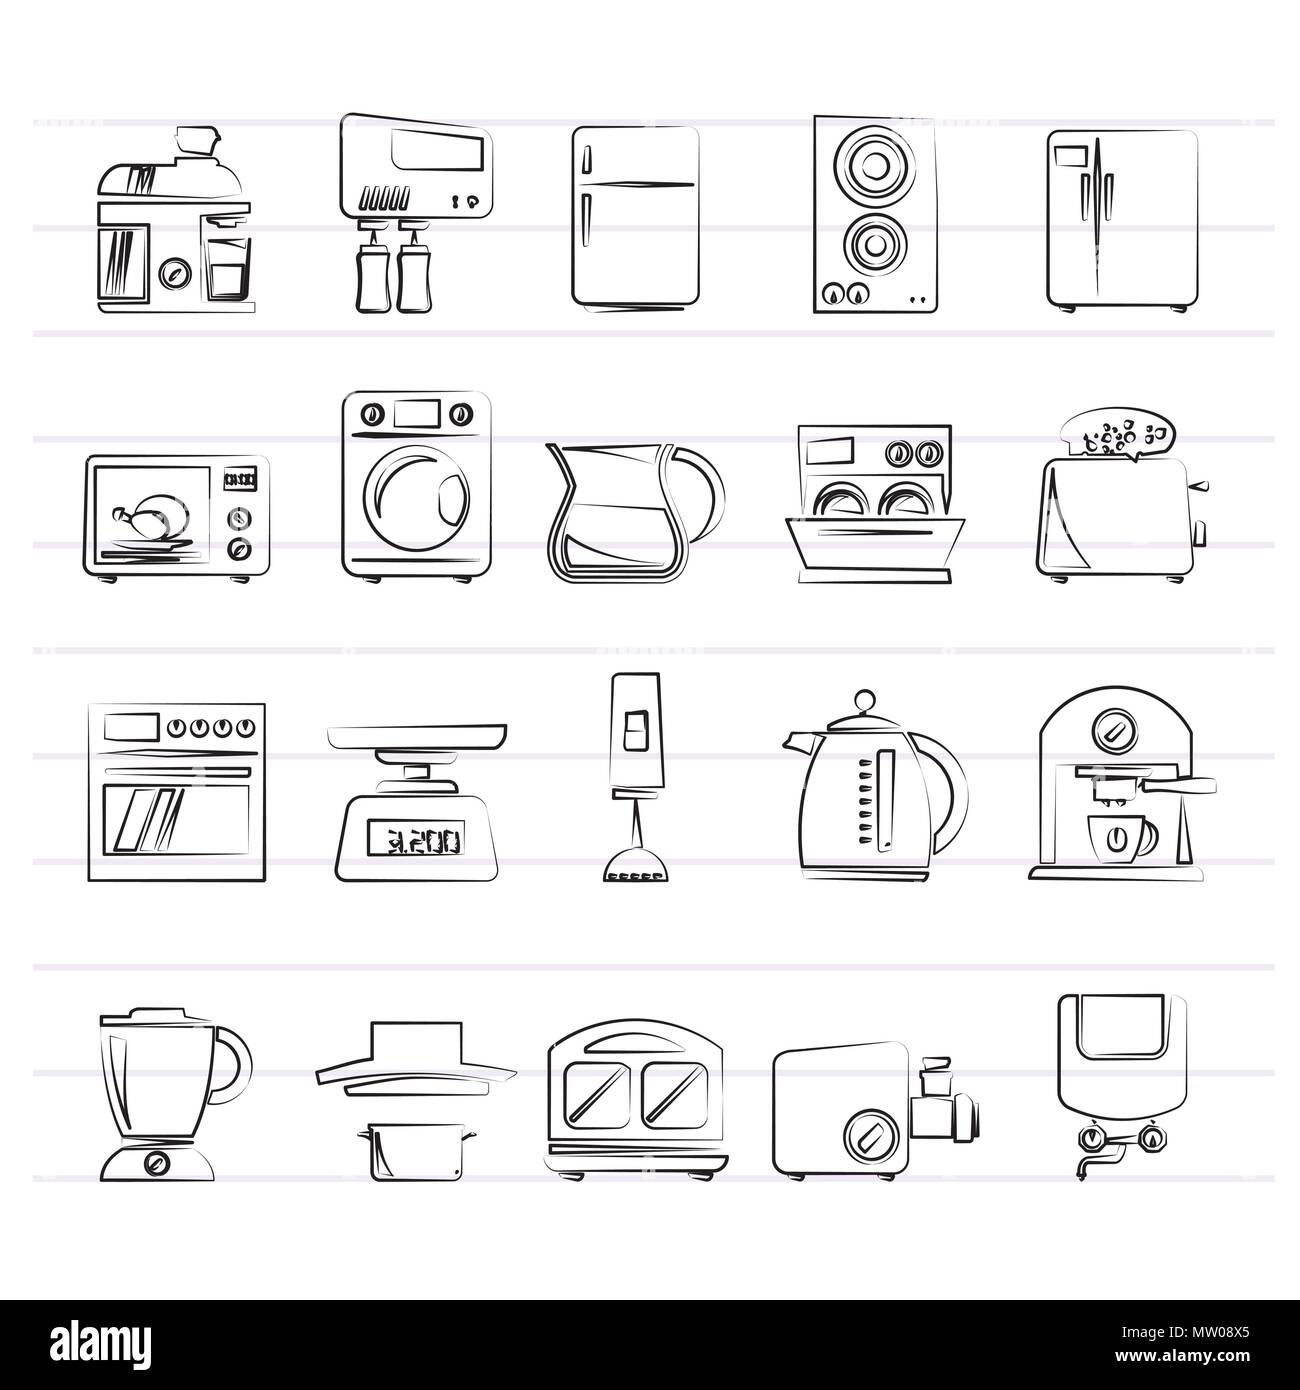 Kitchen Appliances And Kitchenware Icons Vector Icon Set